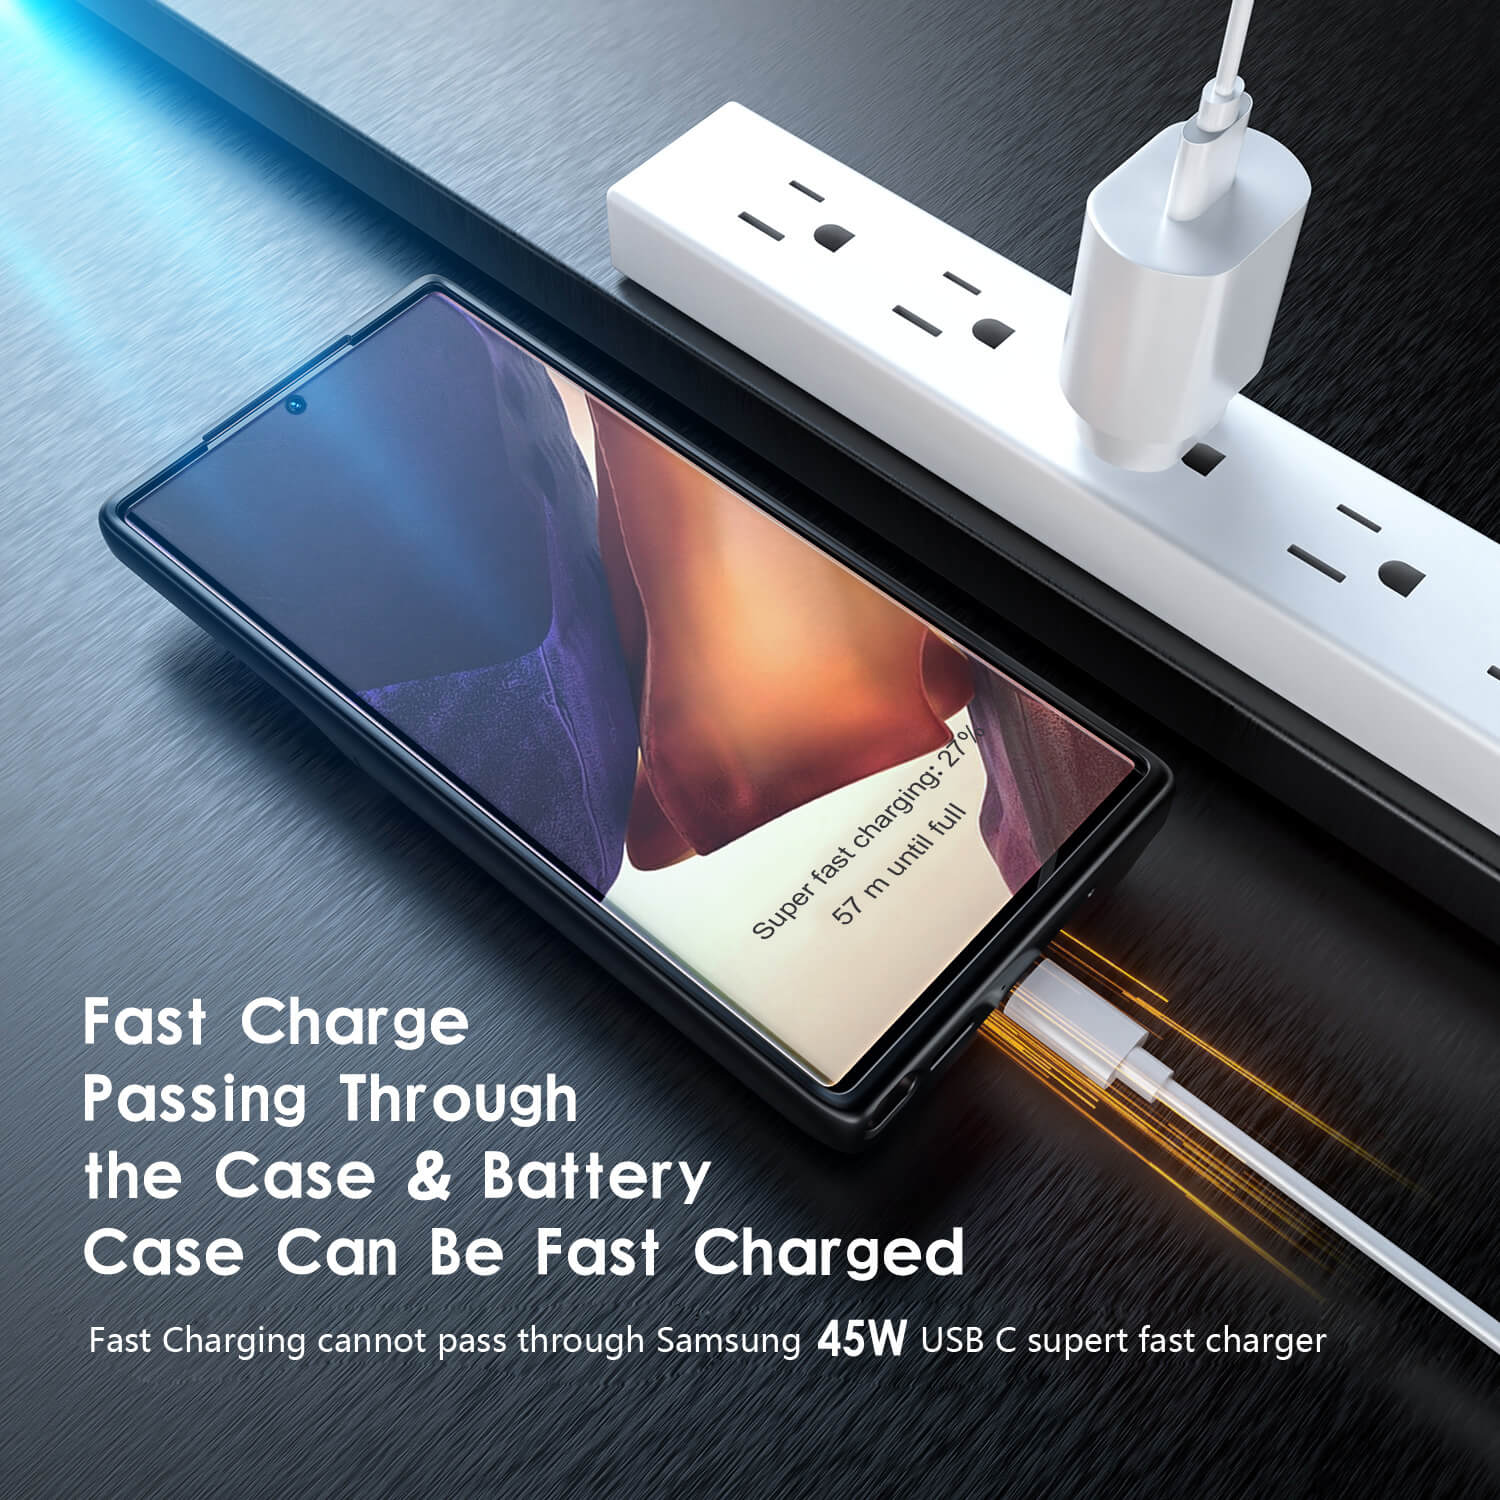 galaxy note 20 ultra battery case, 5000mAh, fast charging, qi wireless charging, wired usb c headset, otg, android auto, samsung dex, data sync